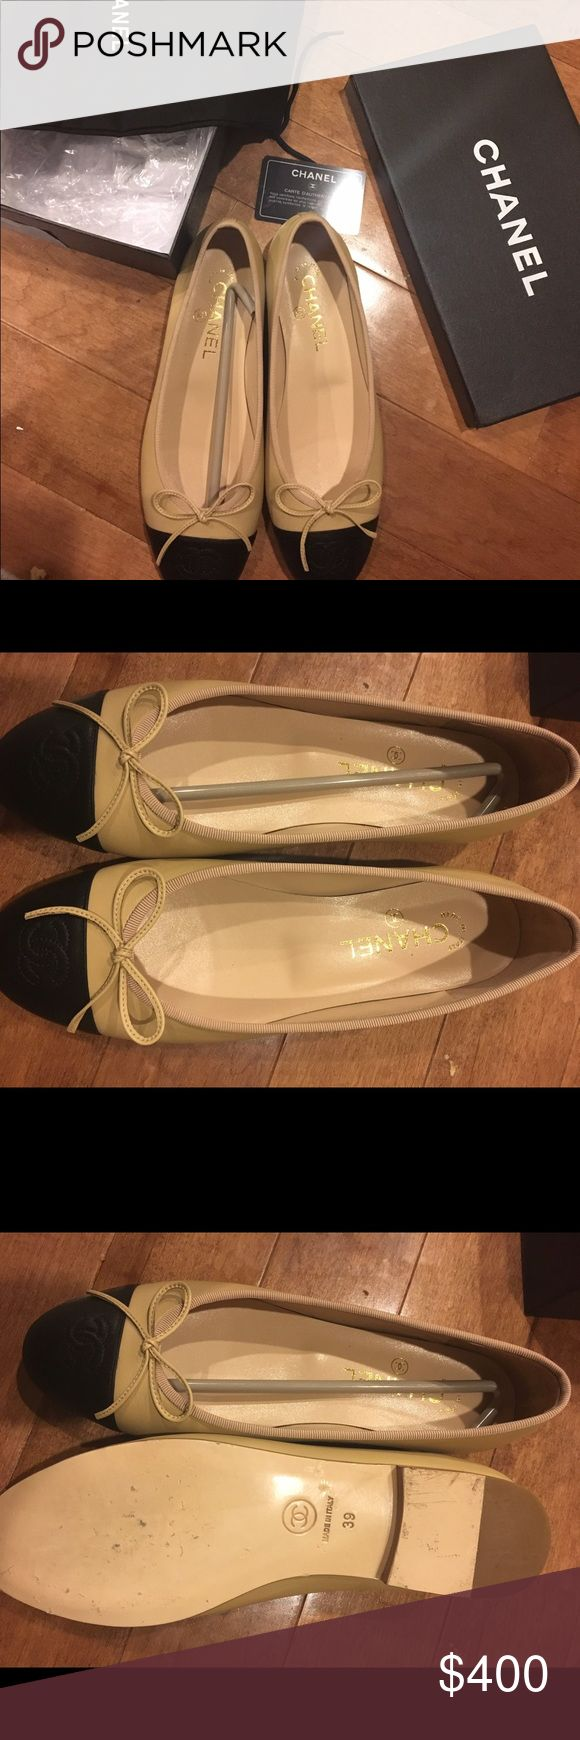 Shoes Chanel I wore it for not longer than 10 minutes. It hurt my foot caz it was way small for me. CHANEL Shoes Flats & Loafers